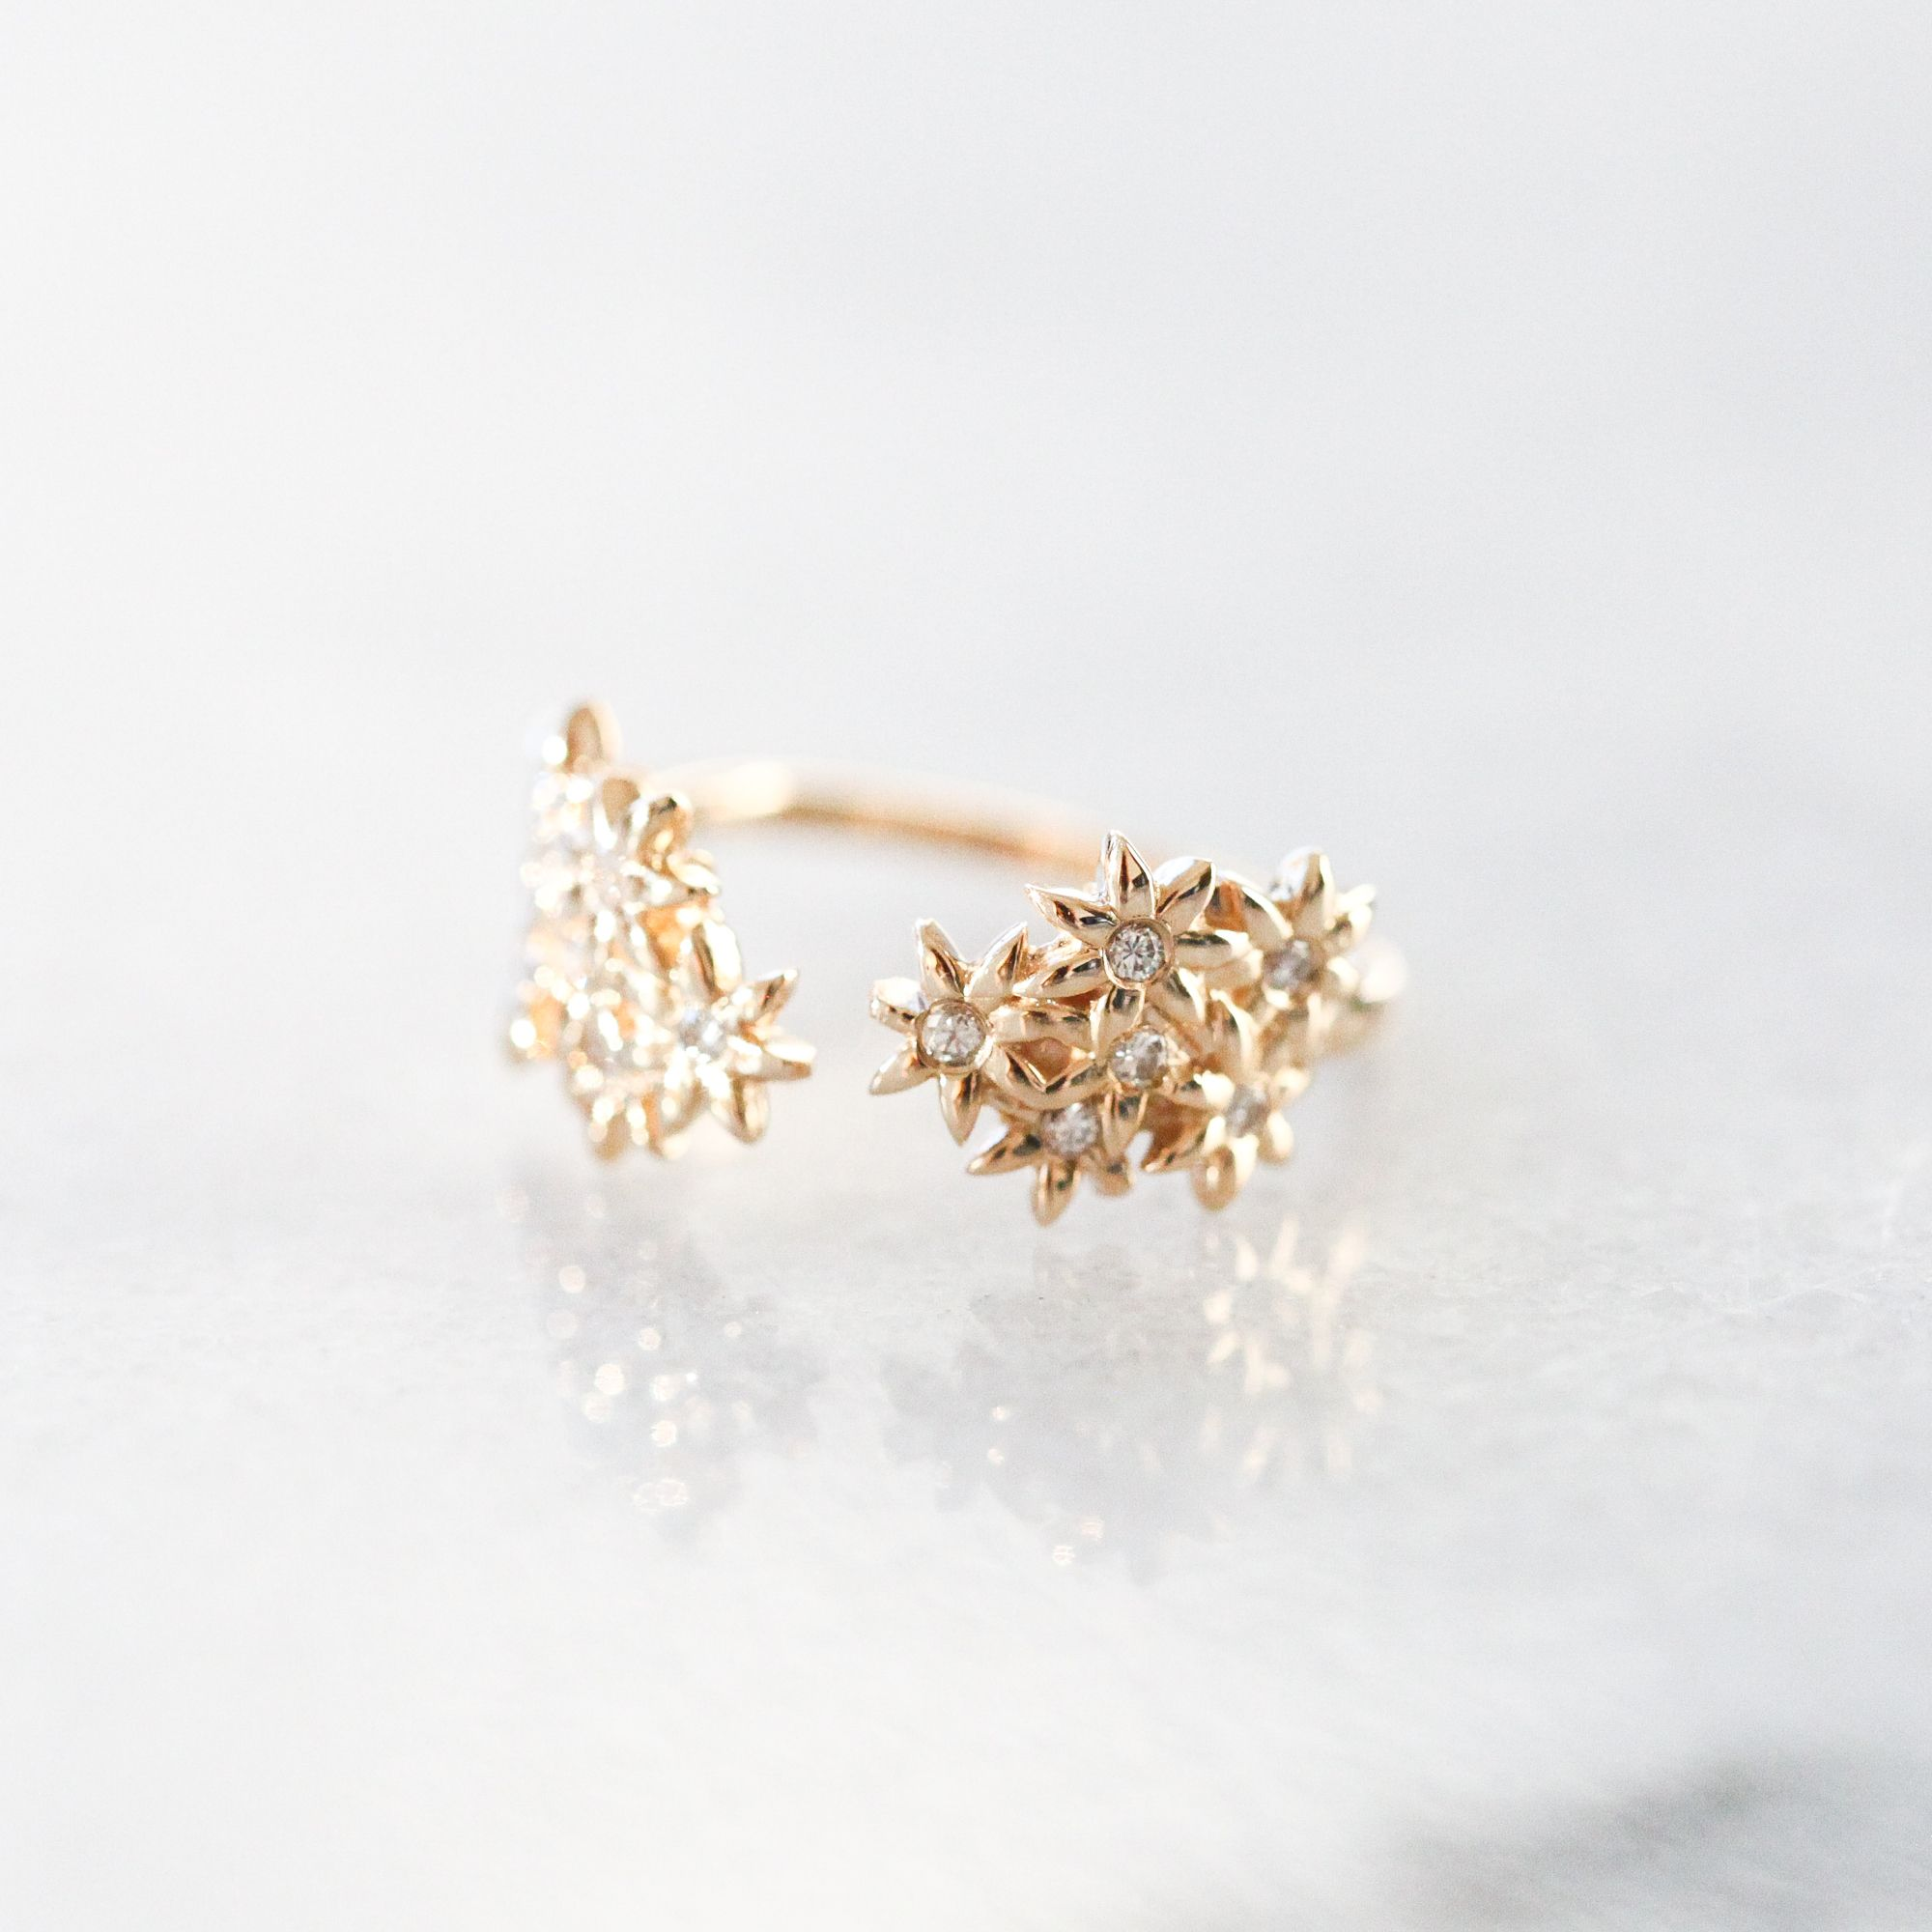 flower promise rings and diamond gwbfktq engagement style unique wedding non funky unusual beautiful